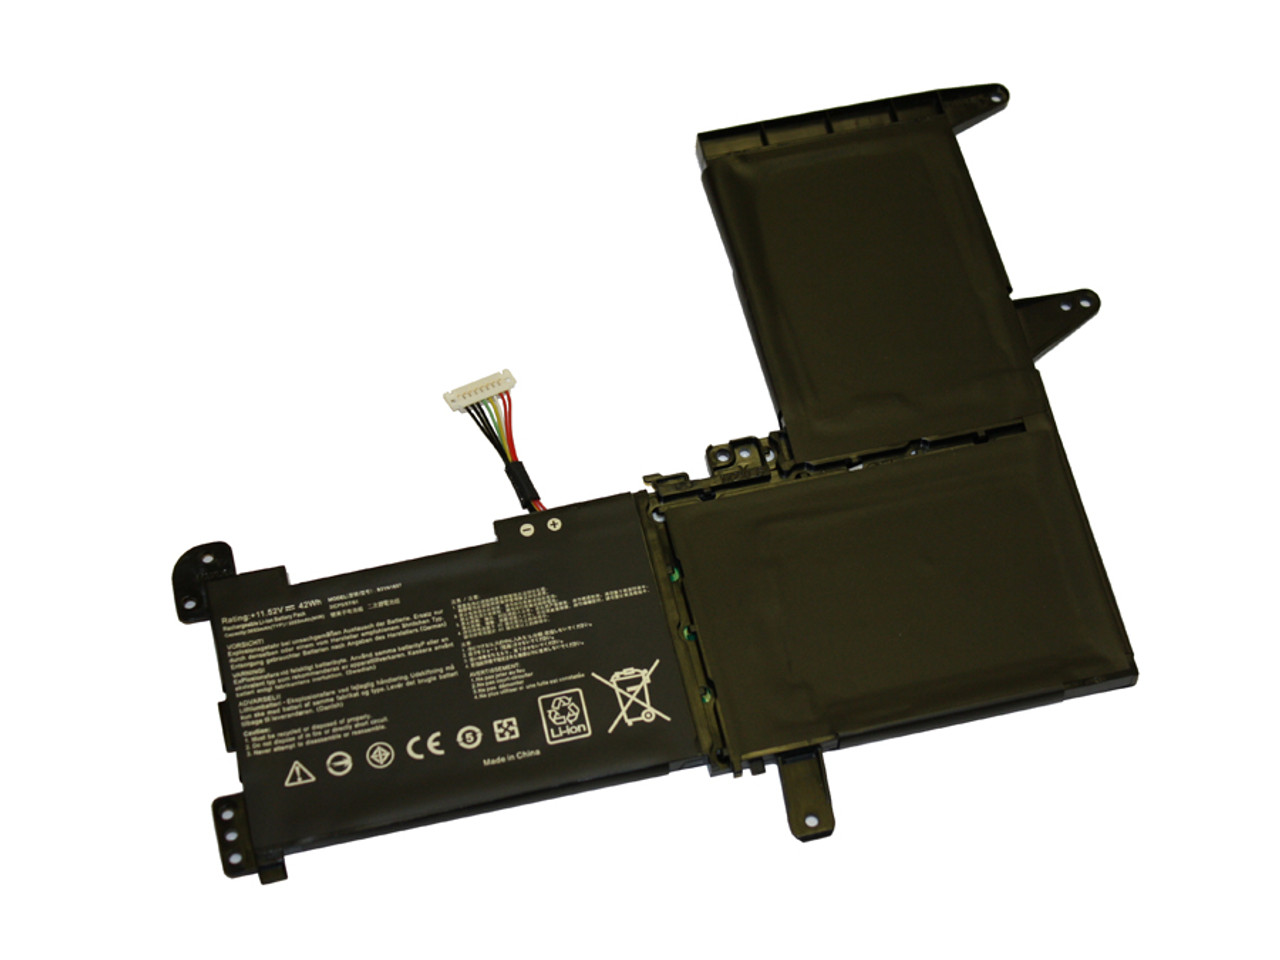 Replacement 3 cell battery for Asus Vivobook F510 S510 X510